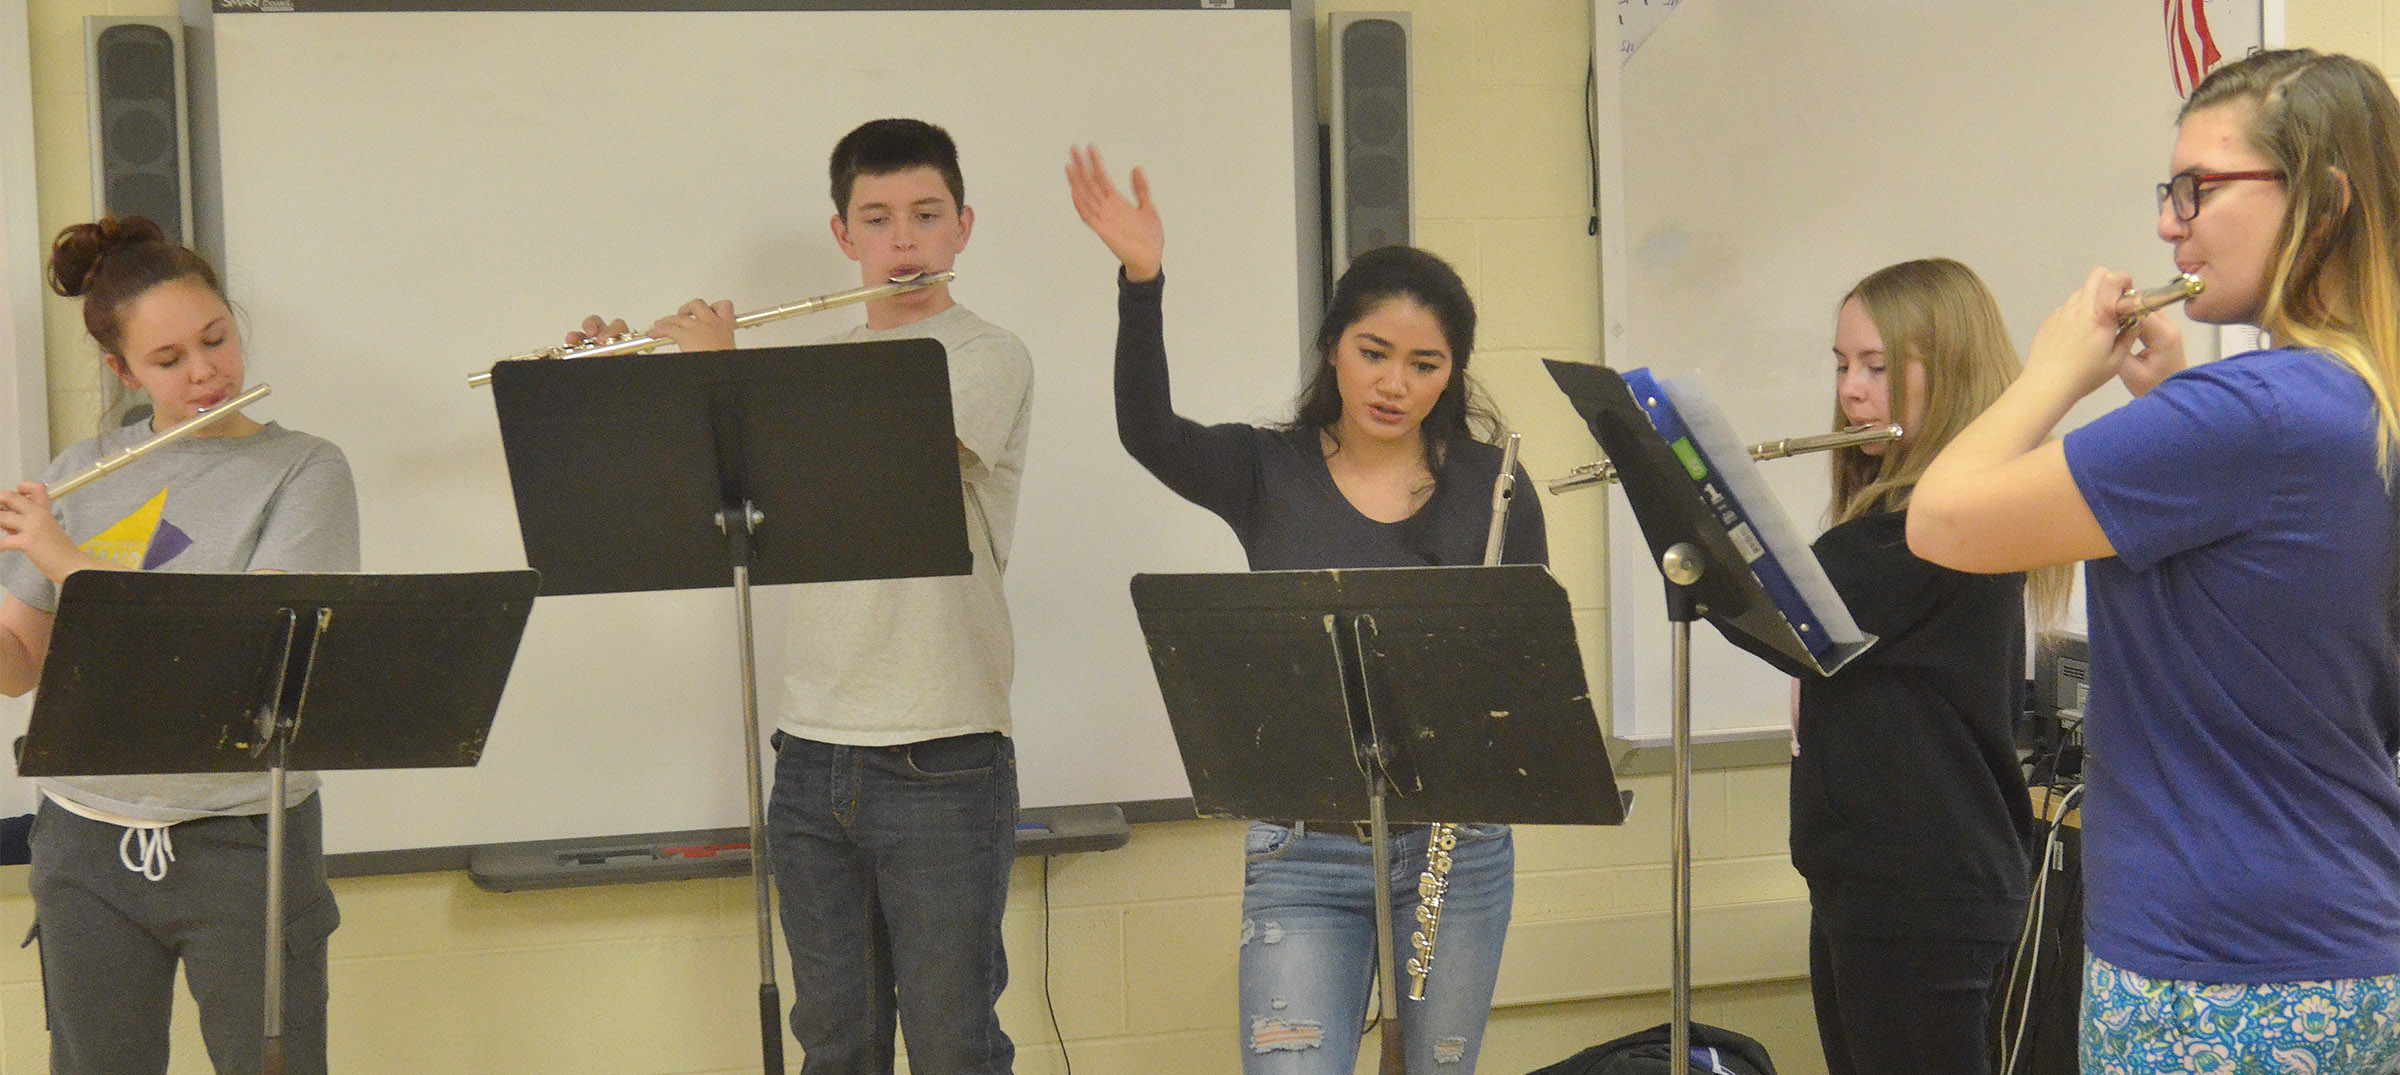 Lindsey Wilson College student Airada Bricker works with flute players, from left, Campbellsville Middle School eighth-grader Mystique Jones, seventh-grader Caden Cowherd, eighth-grader Emily Hayden and CHS junior Tiffany Kane.